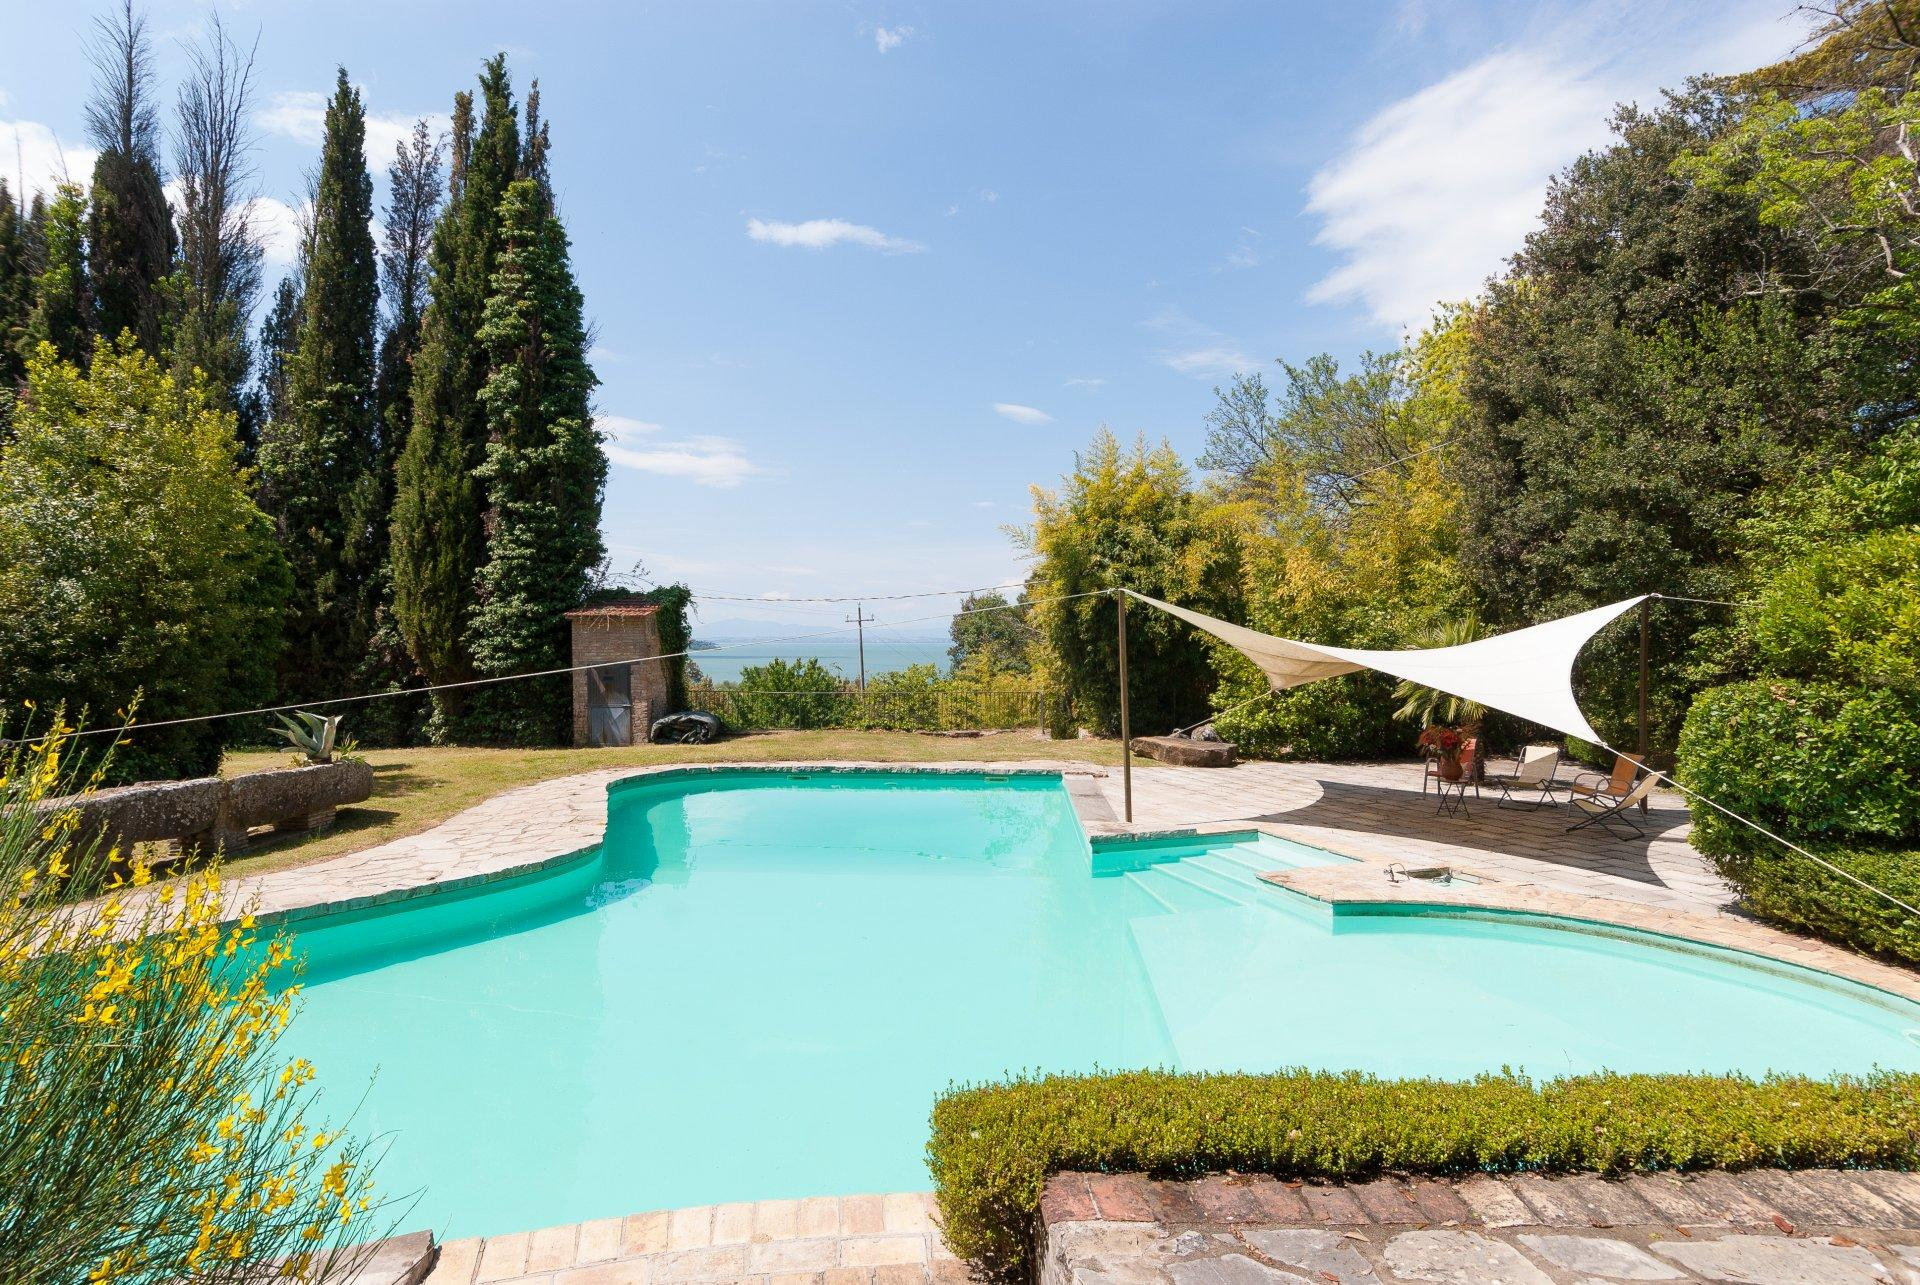 Outdoor pool, Castel Miralago, Umbria, Lake Trasimeno.